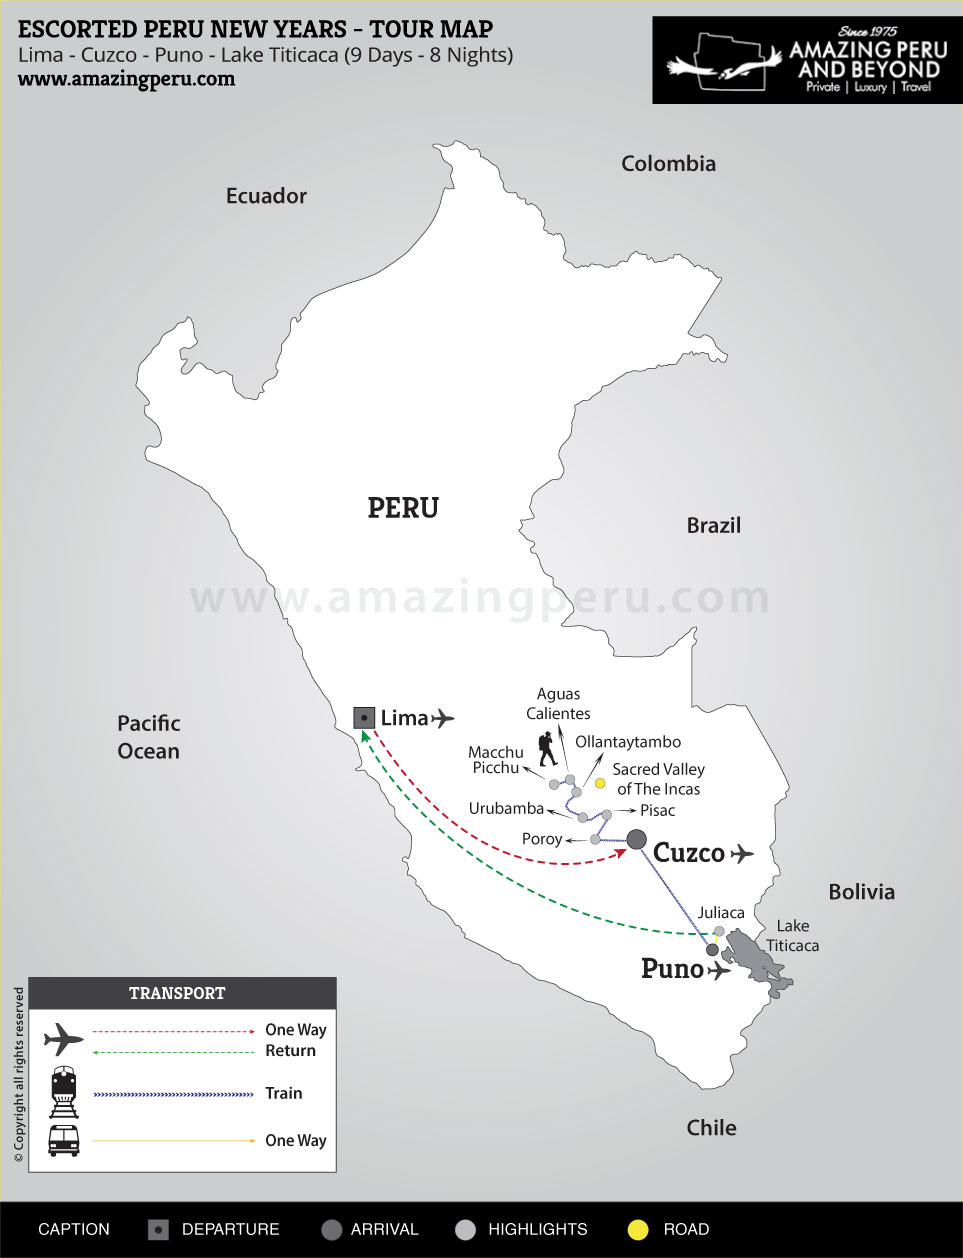 2013-14 Escorted Peru New Years 1 - 9 days / 8 nights.